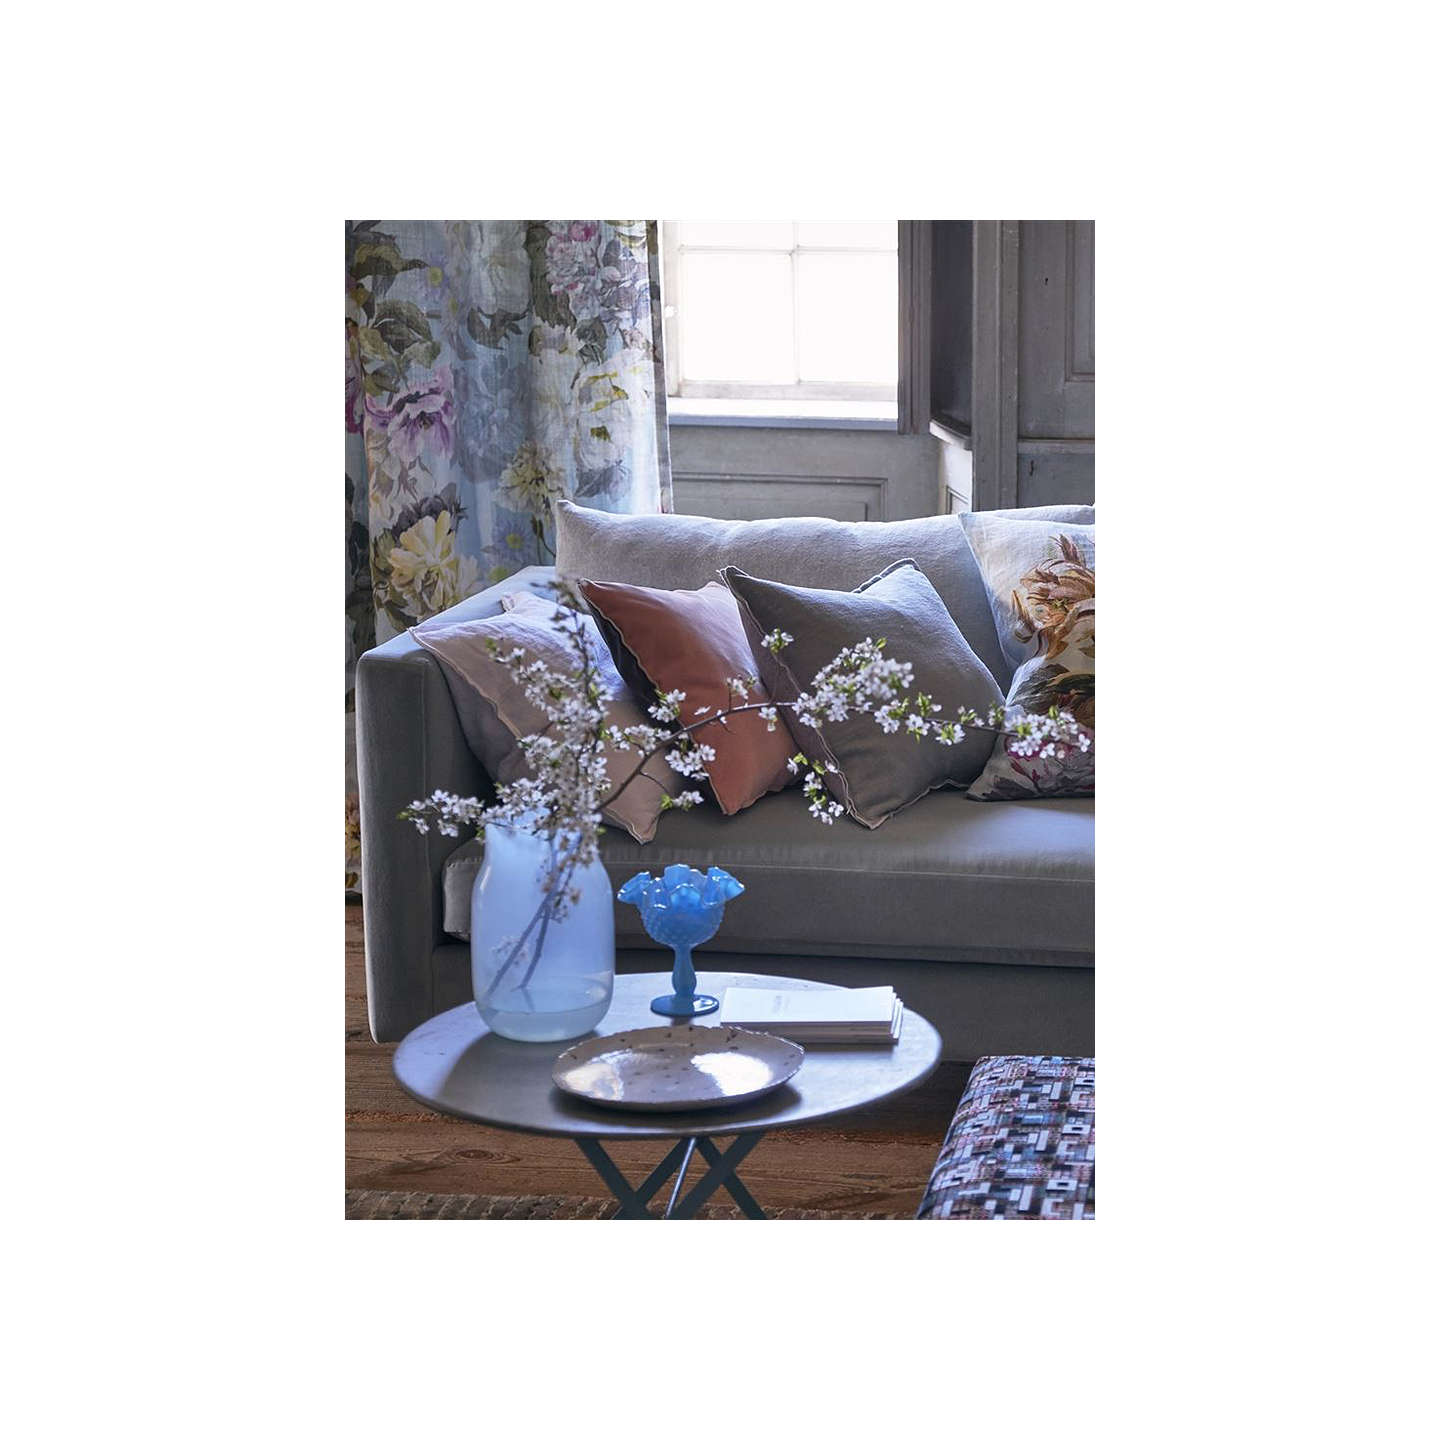 BuyDesigners Guild Varese Cushion, Cameo Online at johnlewis.com